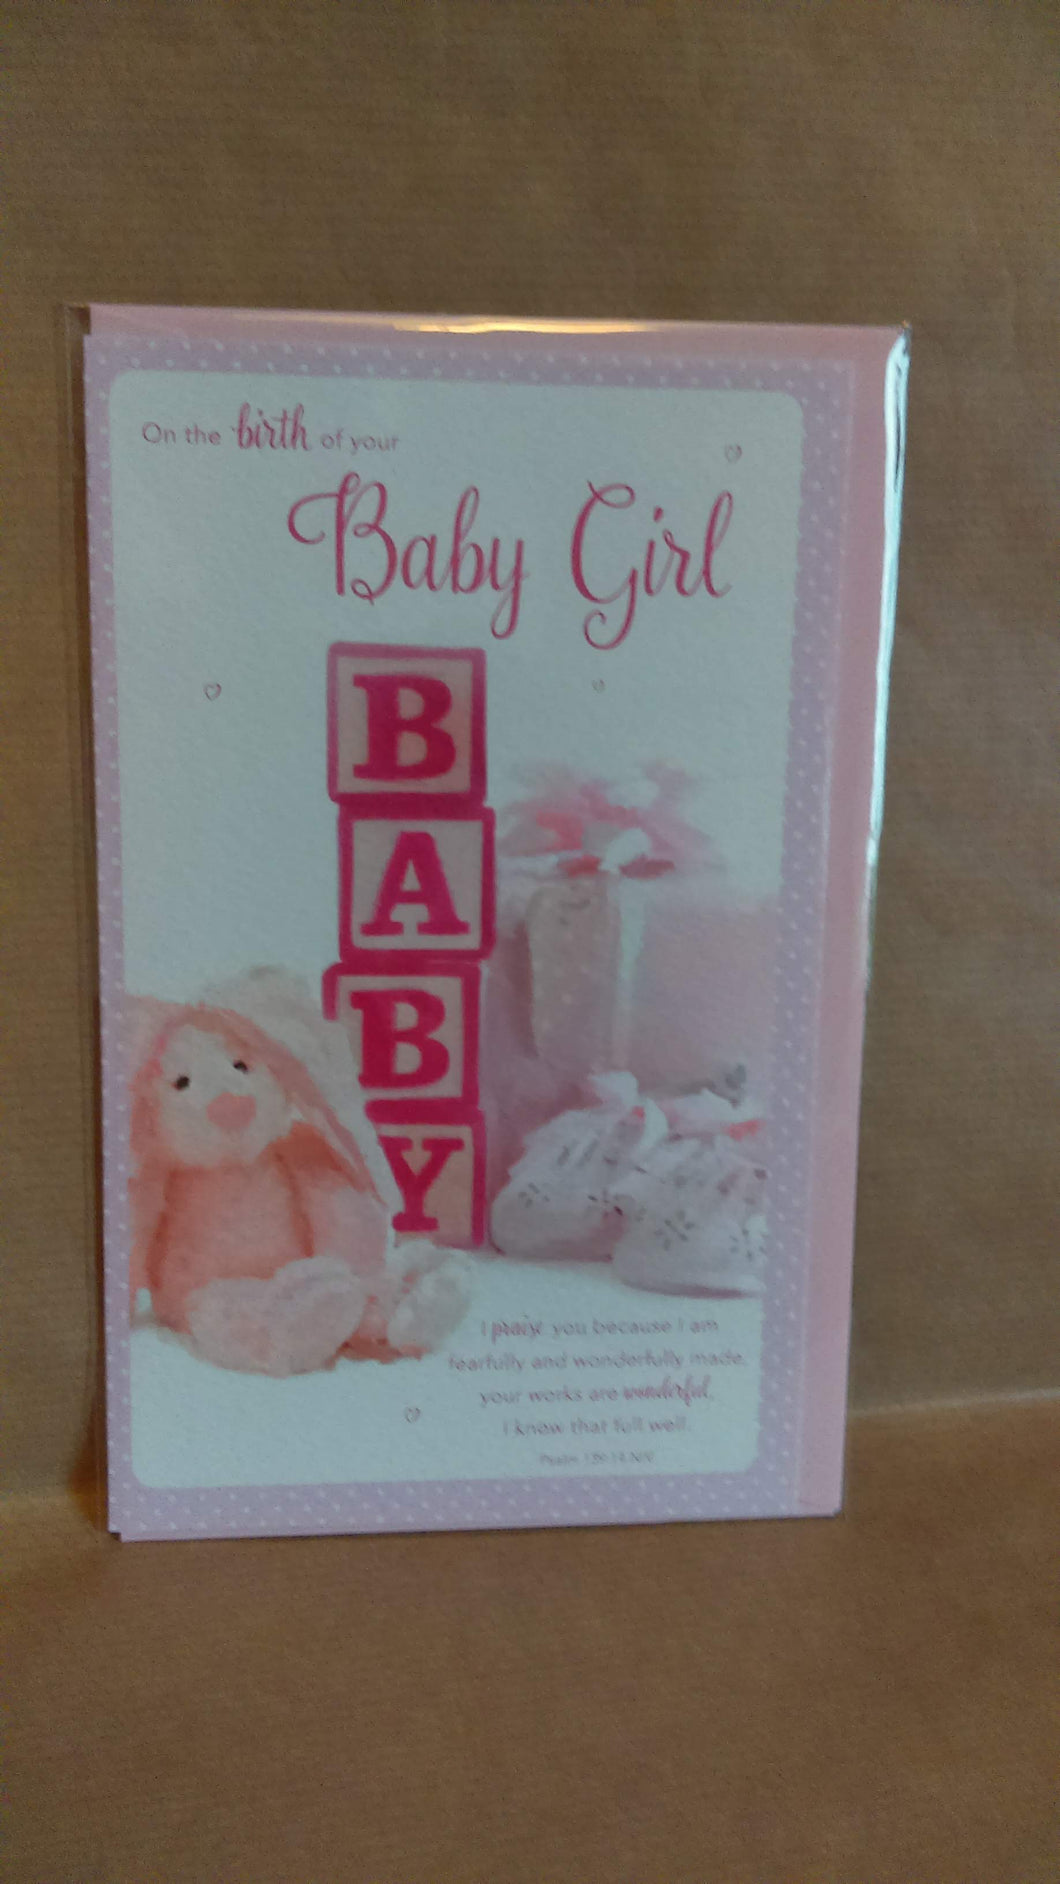 New Baby On the birth of your Baby Girl